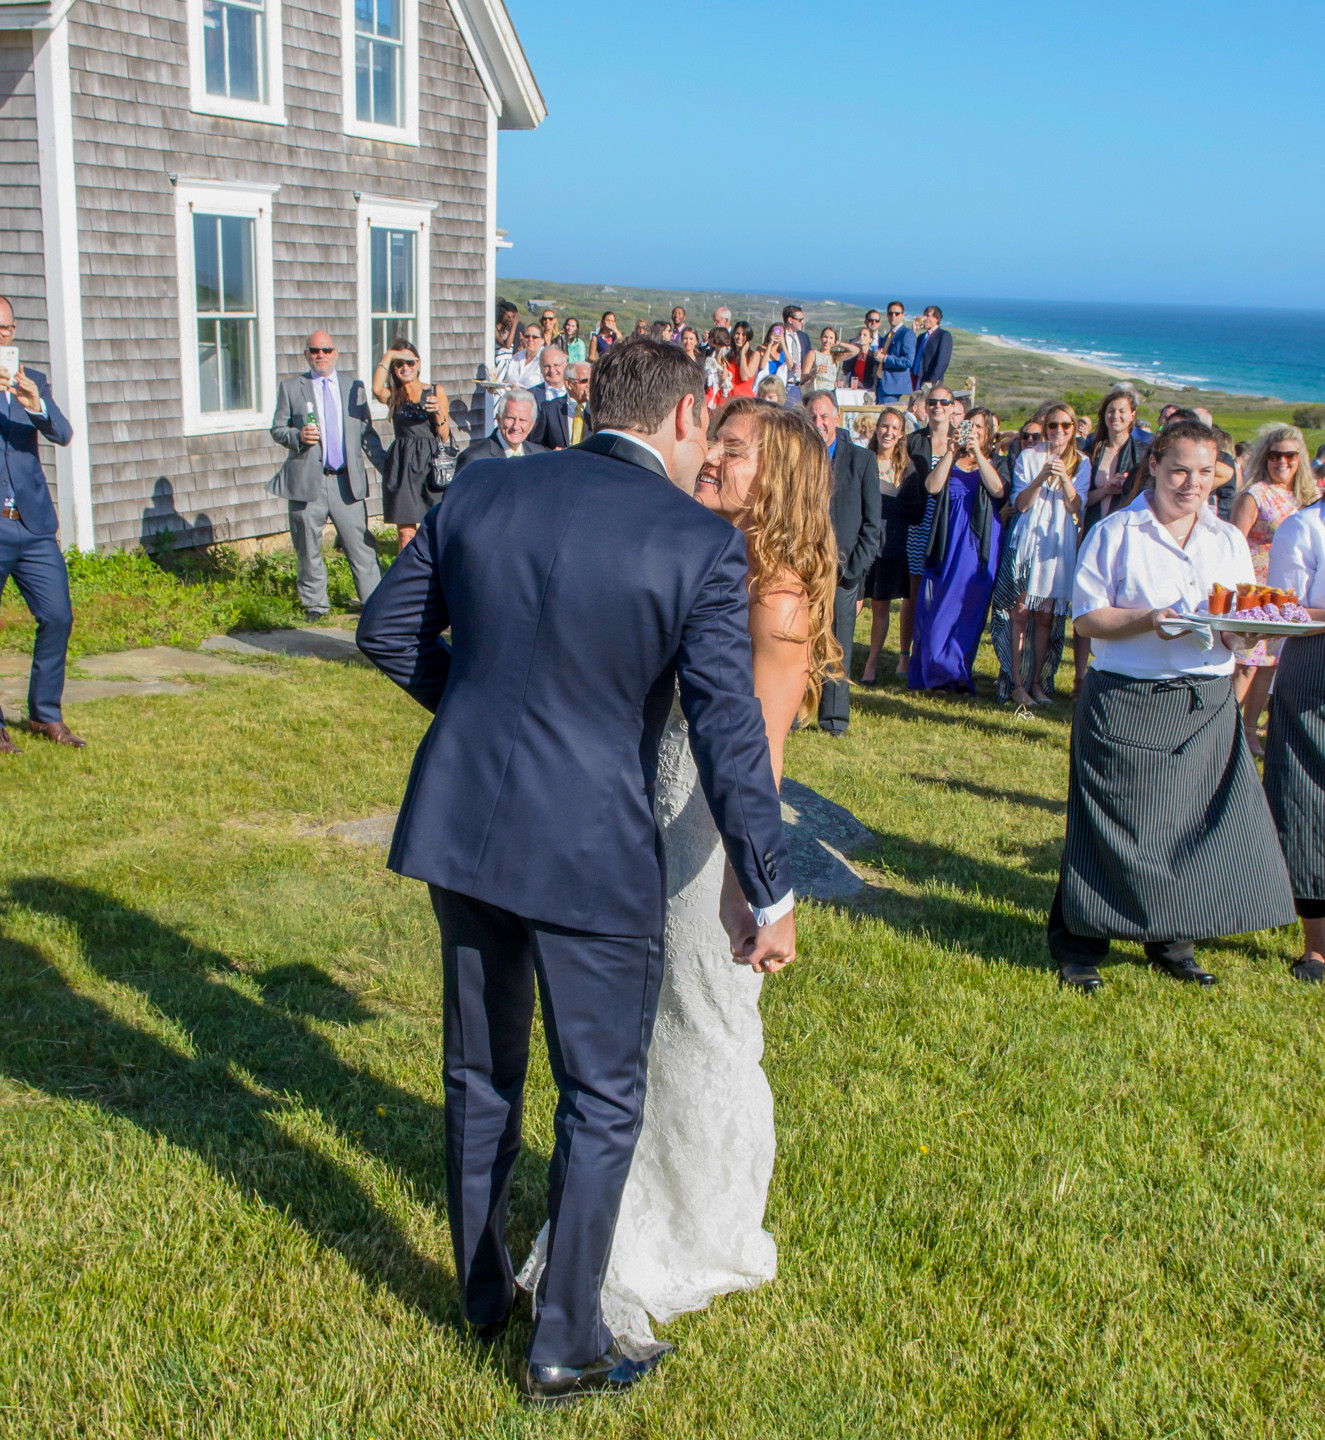 A bride and groom at the Vanderhoop Homestead photo by David Welch Photography